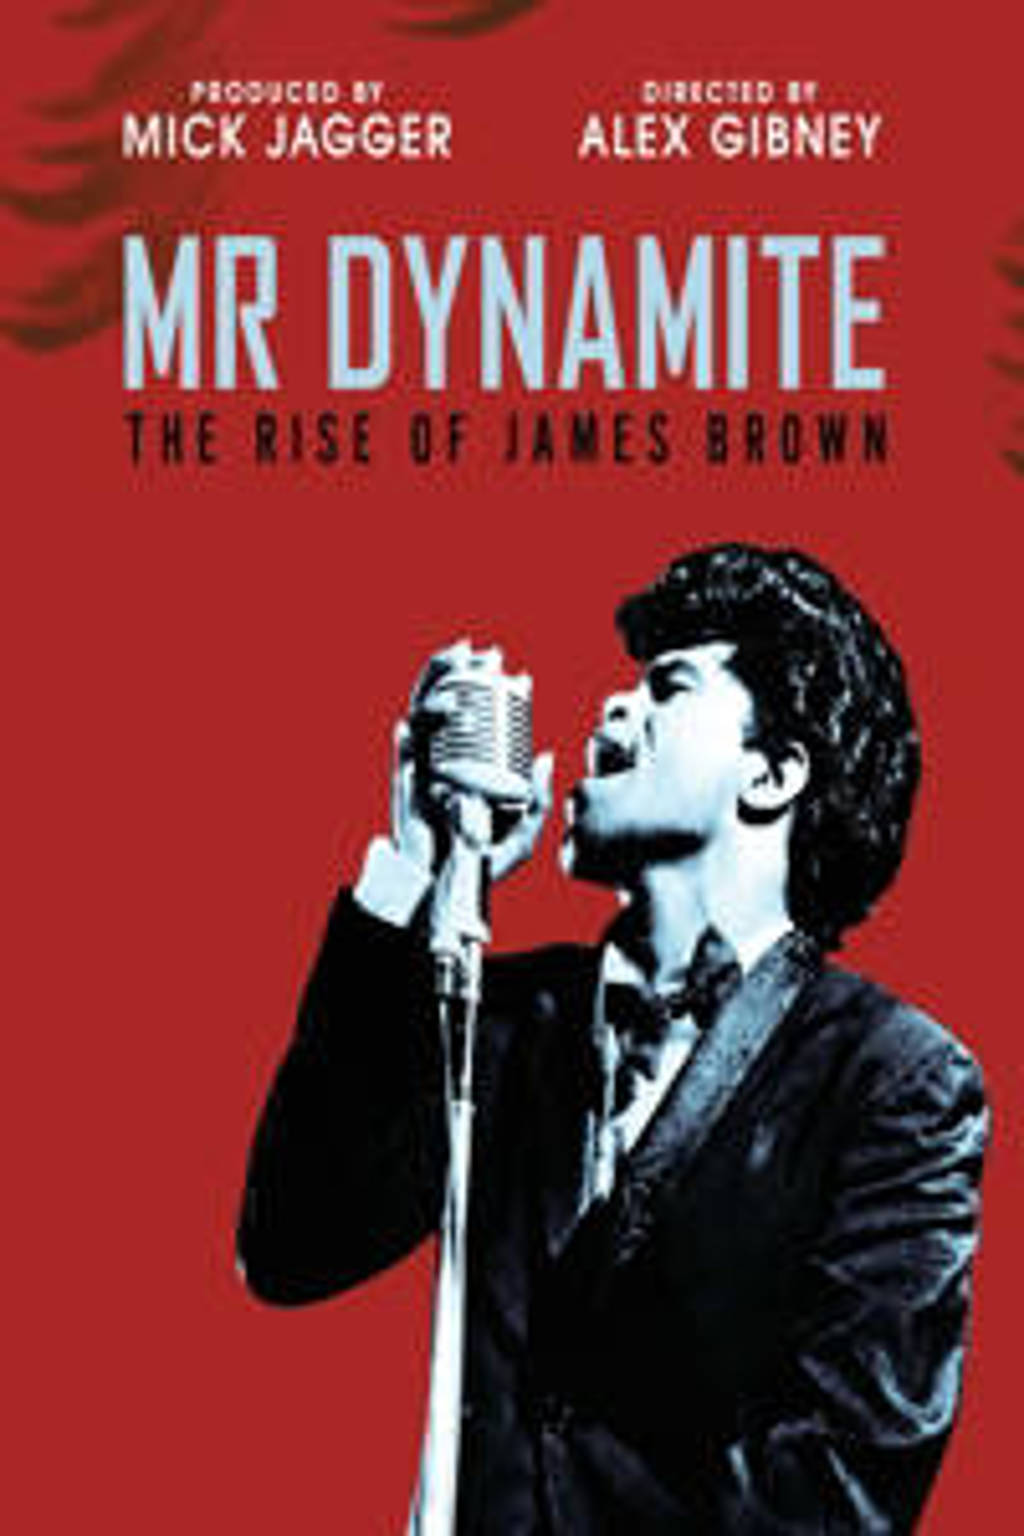 James Brown - Mr. Dynamite: The Rise Of James Bro (DVD)